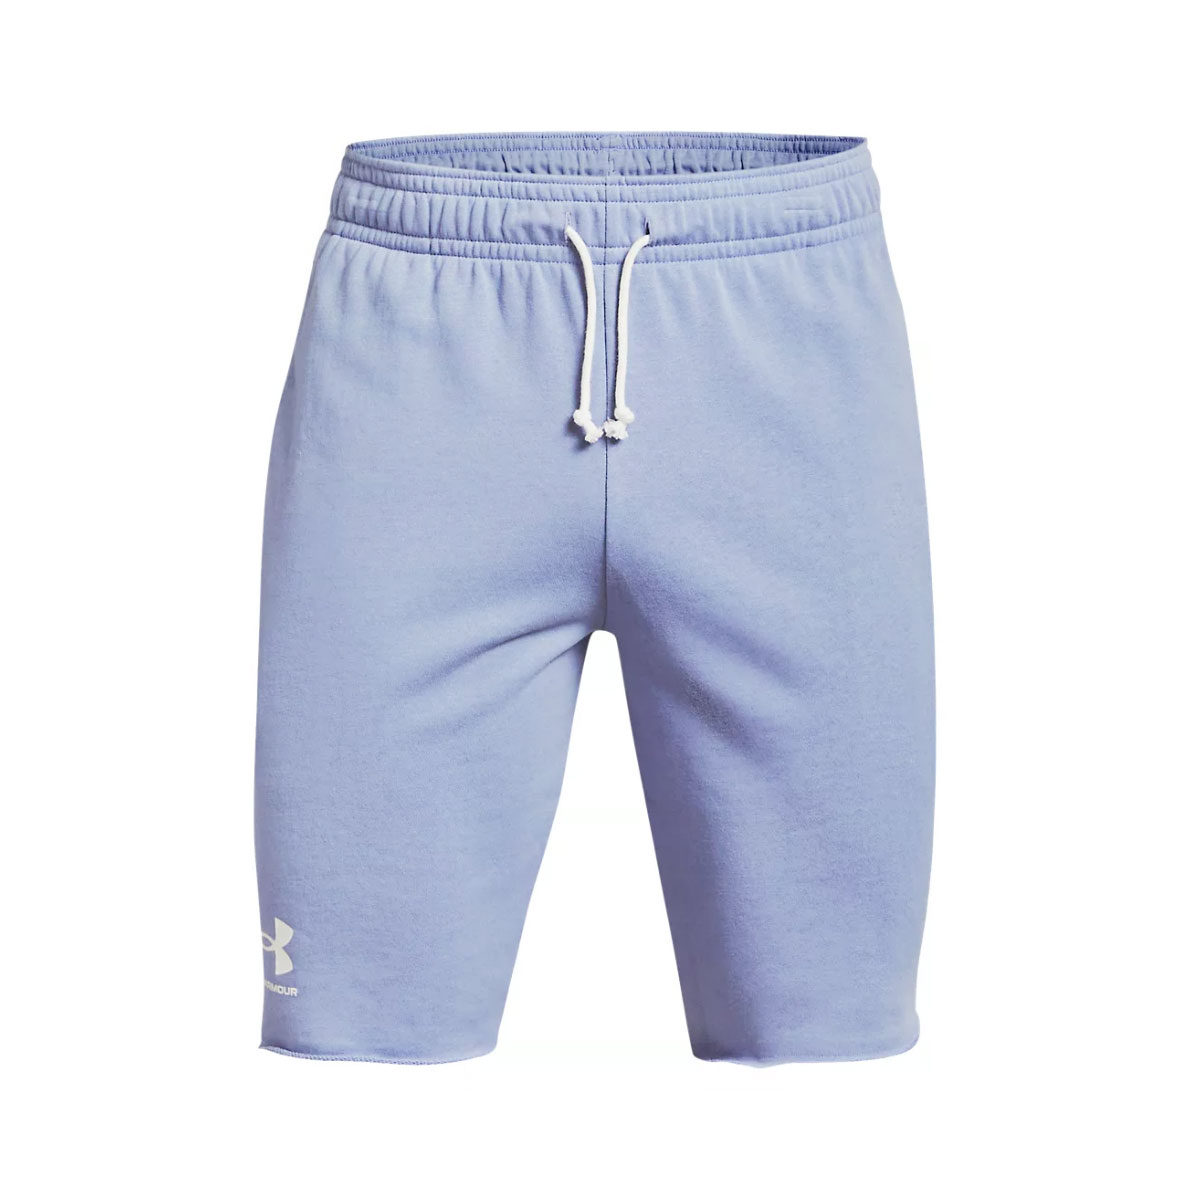 Men's Rival Terry Shorts, Blue, swatch